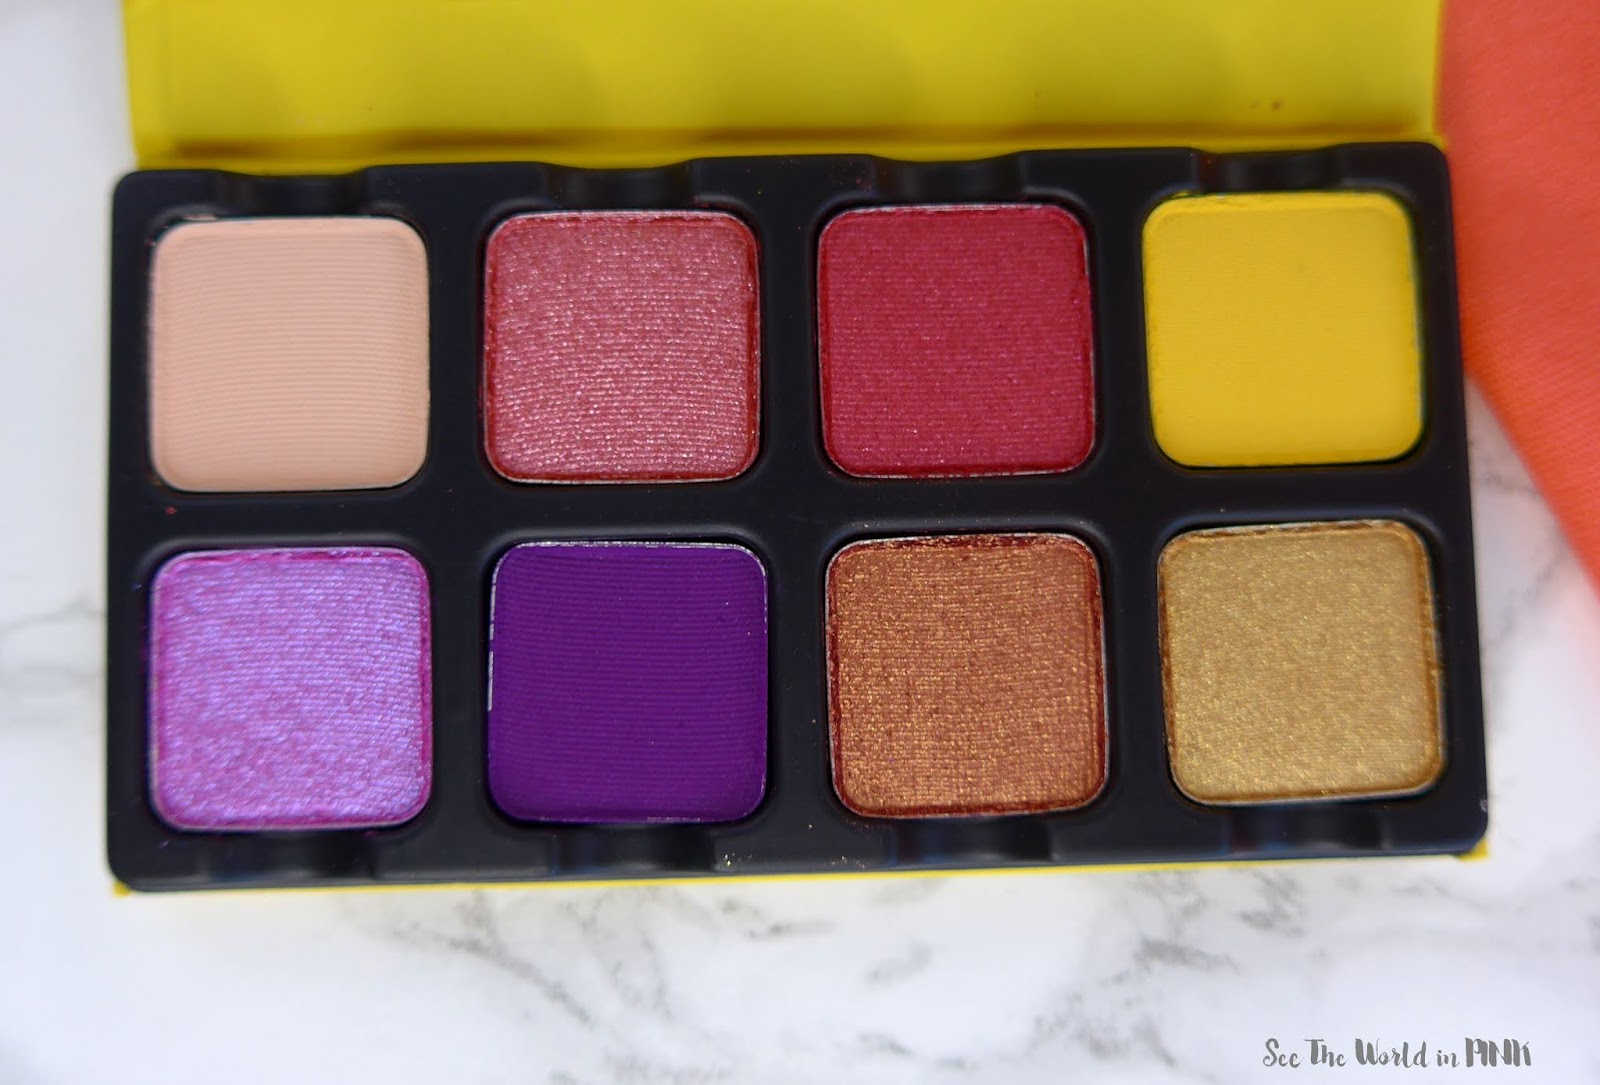 Viseart Petite Pro 5 Soleil Palette - Swatches, Makeup Look, and Review